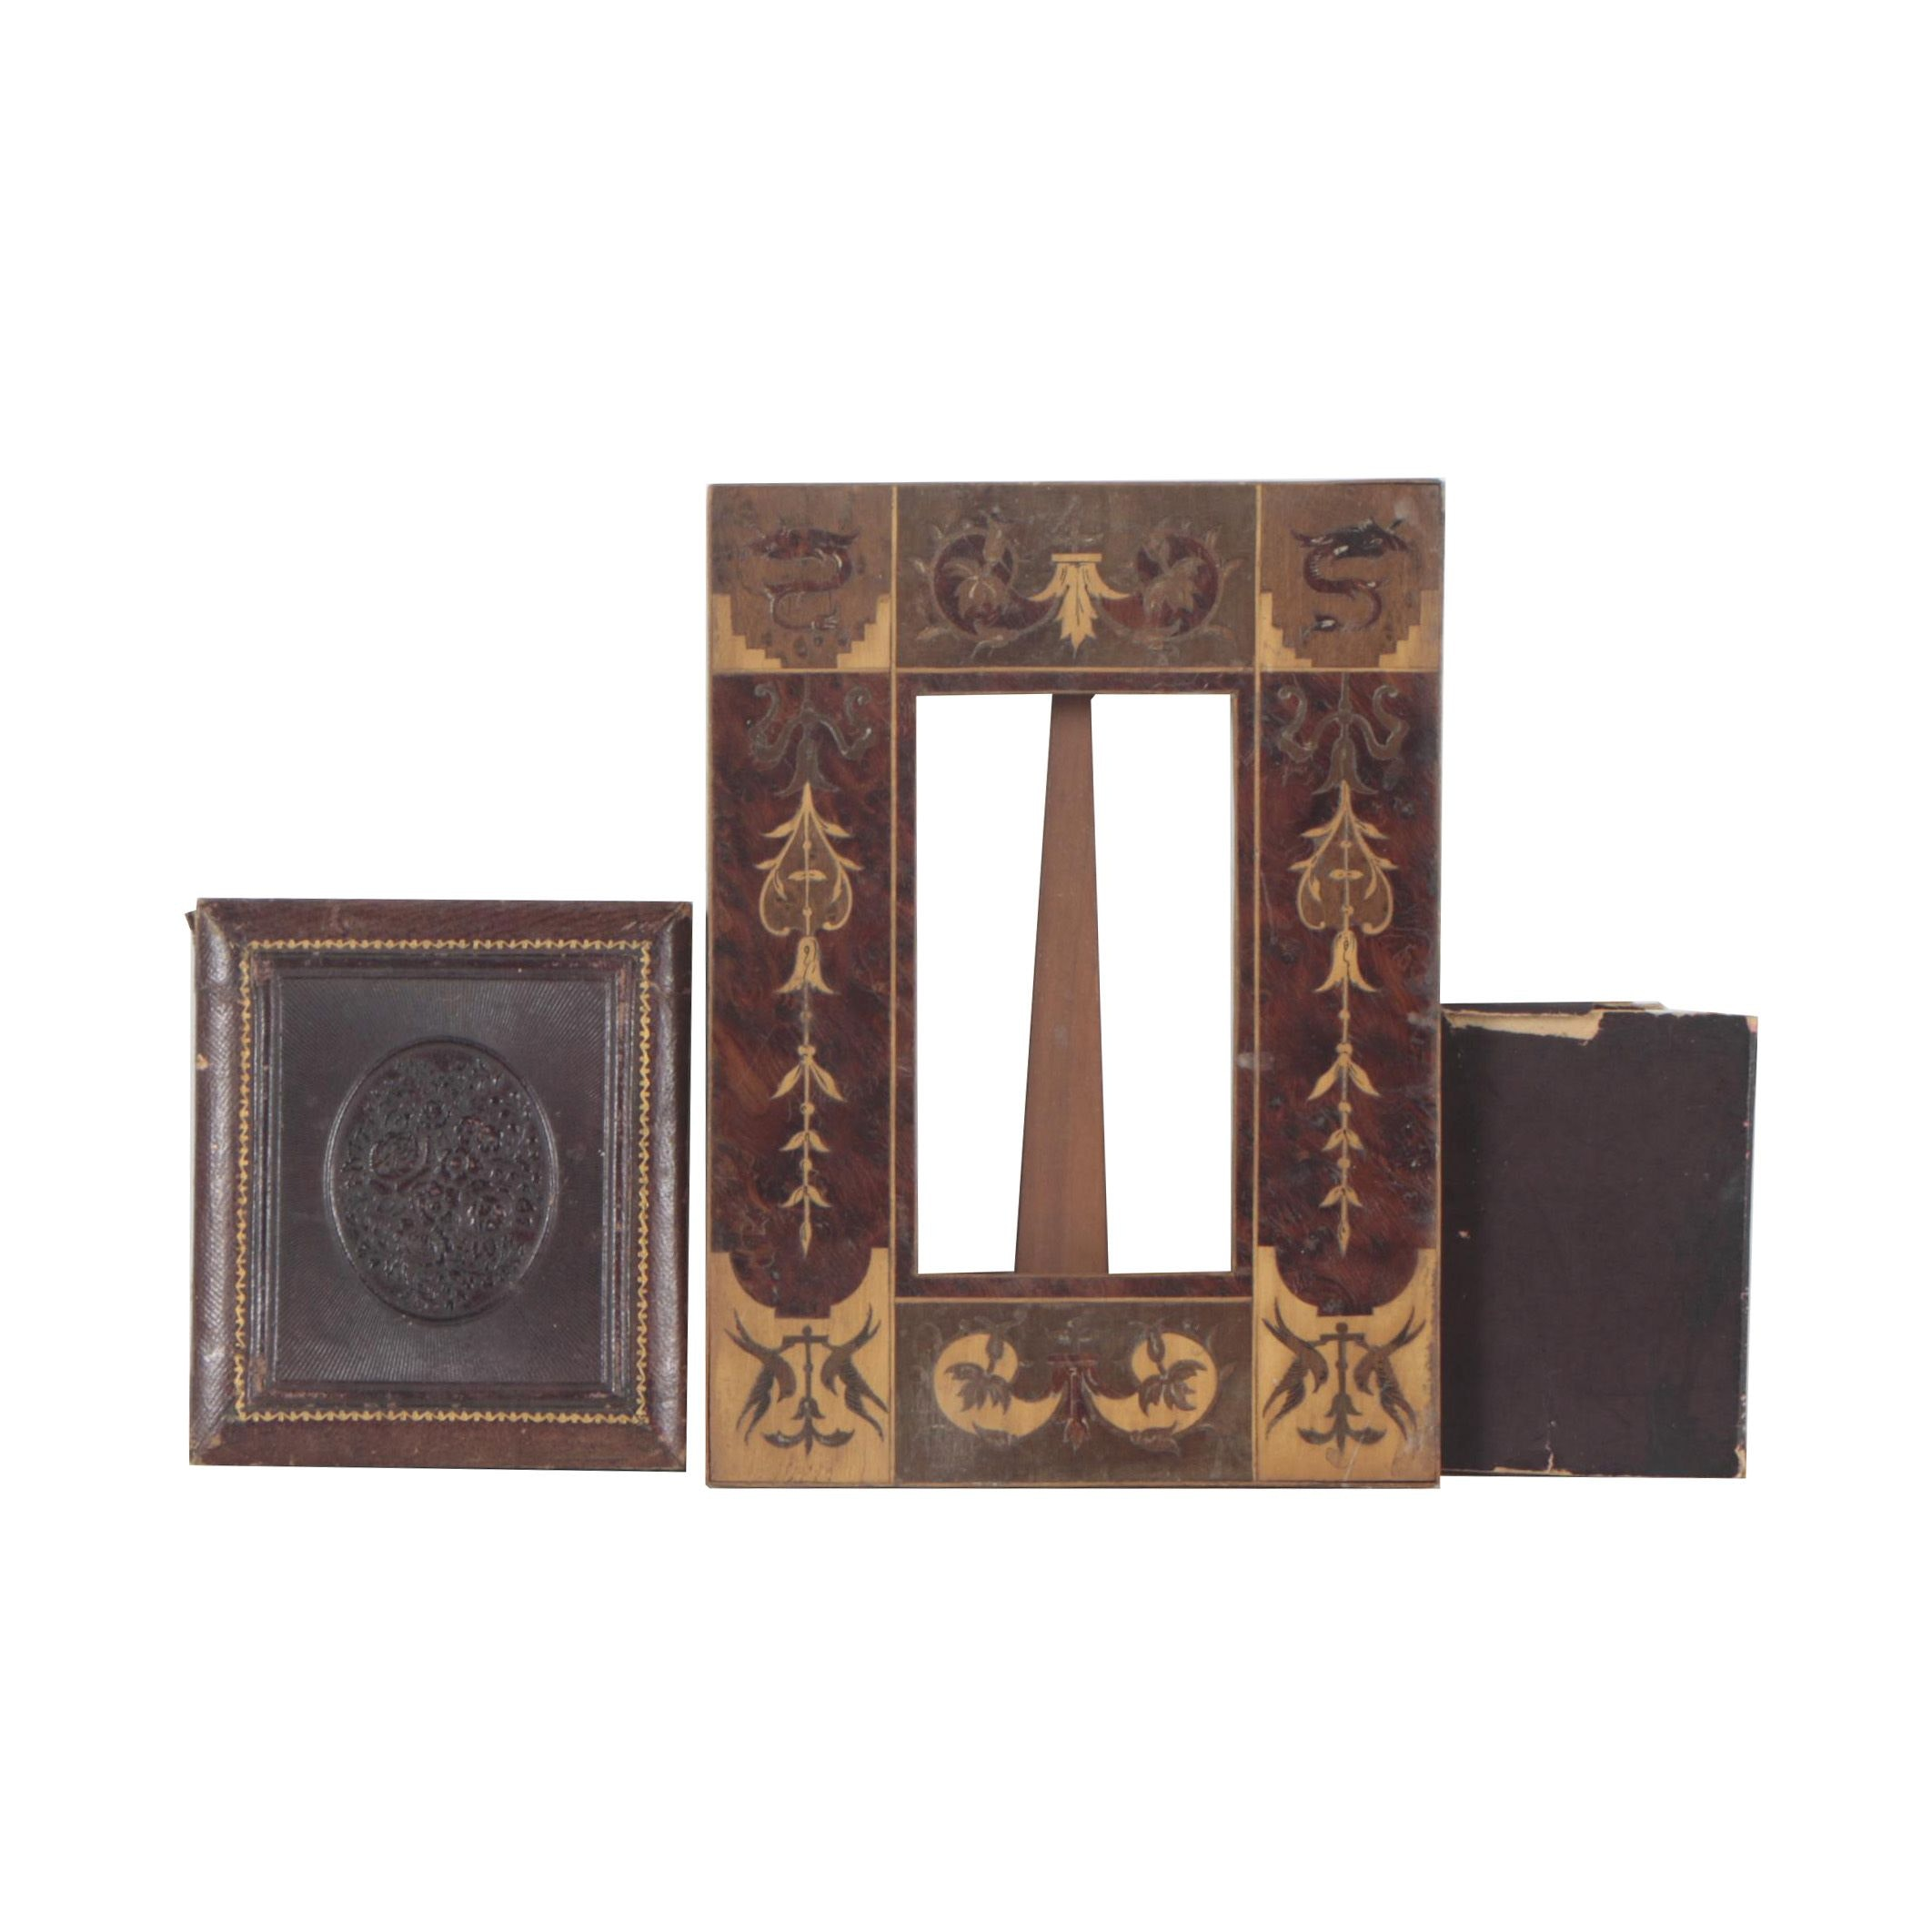 Vintage Wooden Inlaid Frame with Miniature Book and Leather Case